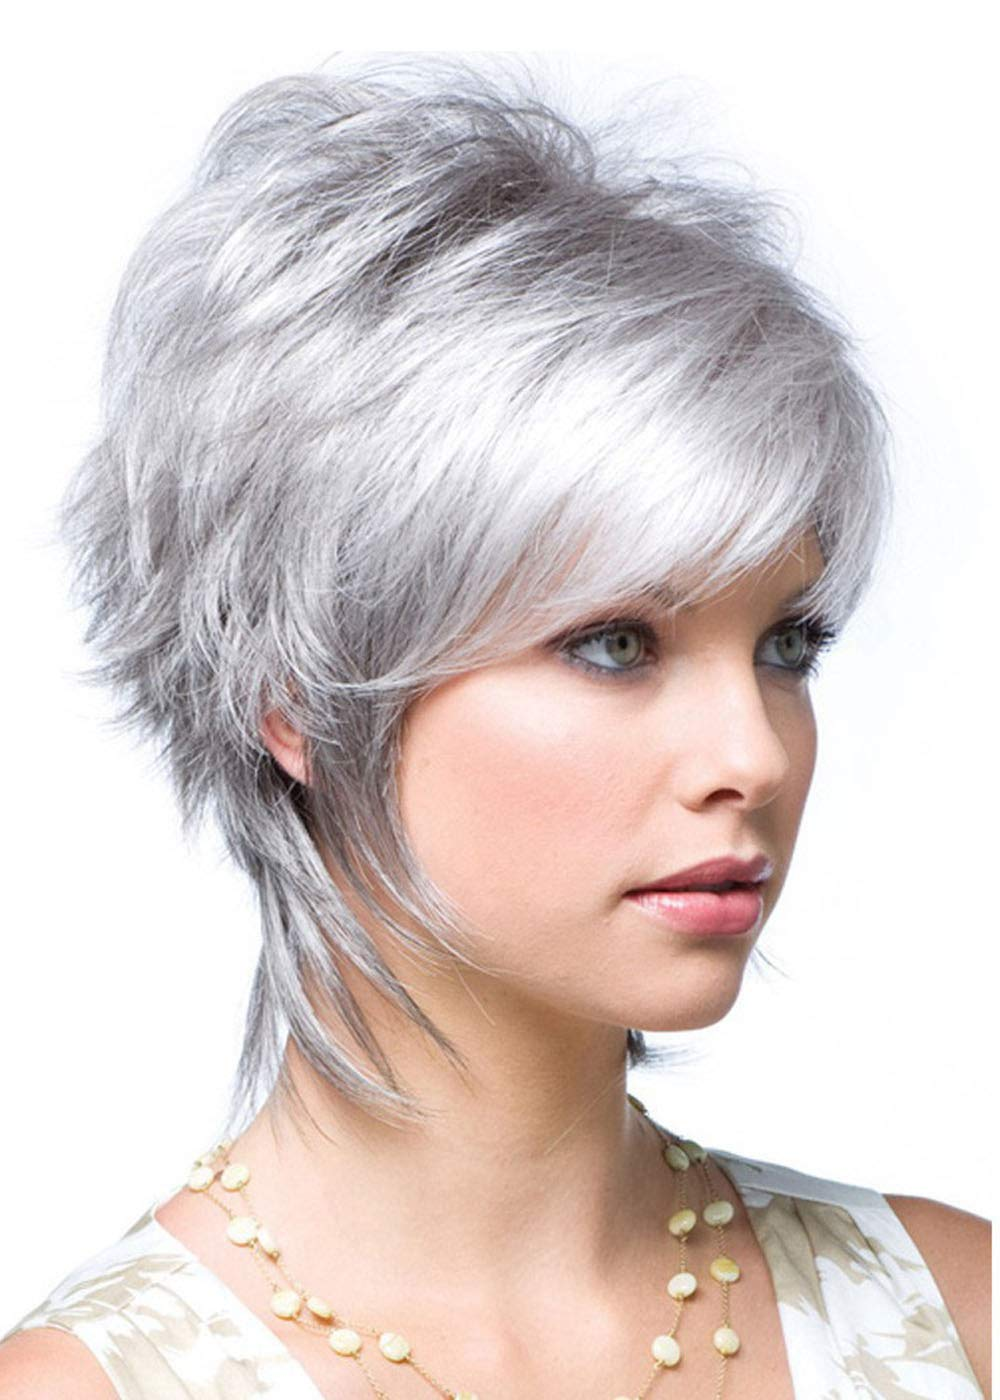 MILISI Short Silver Gray Wigs for White Women Natural Curly Synthetic Fashion Full Wig with Oblique Bangs Cosplay Party Wig + 1 Wig Cap